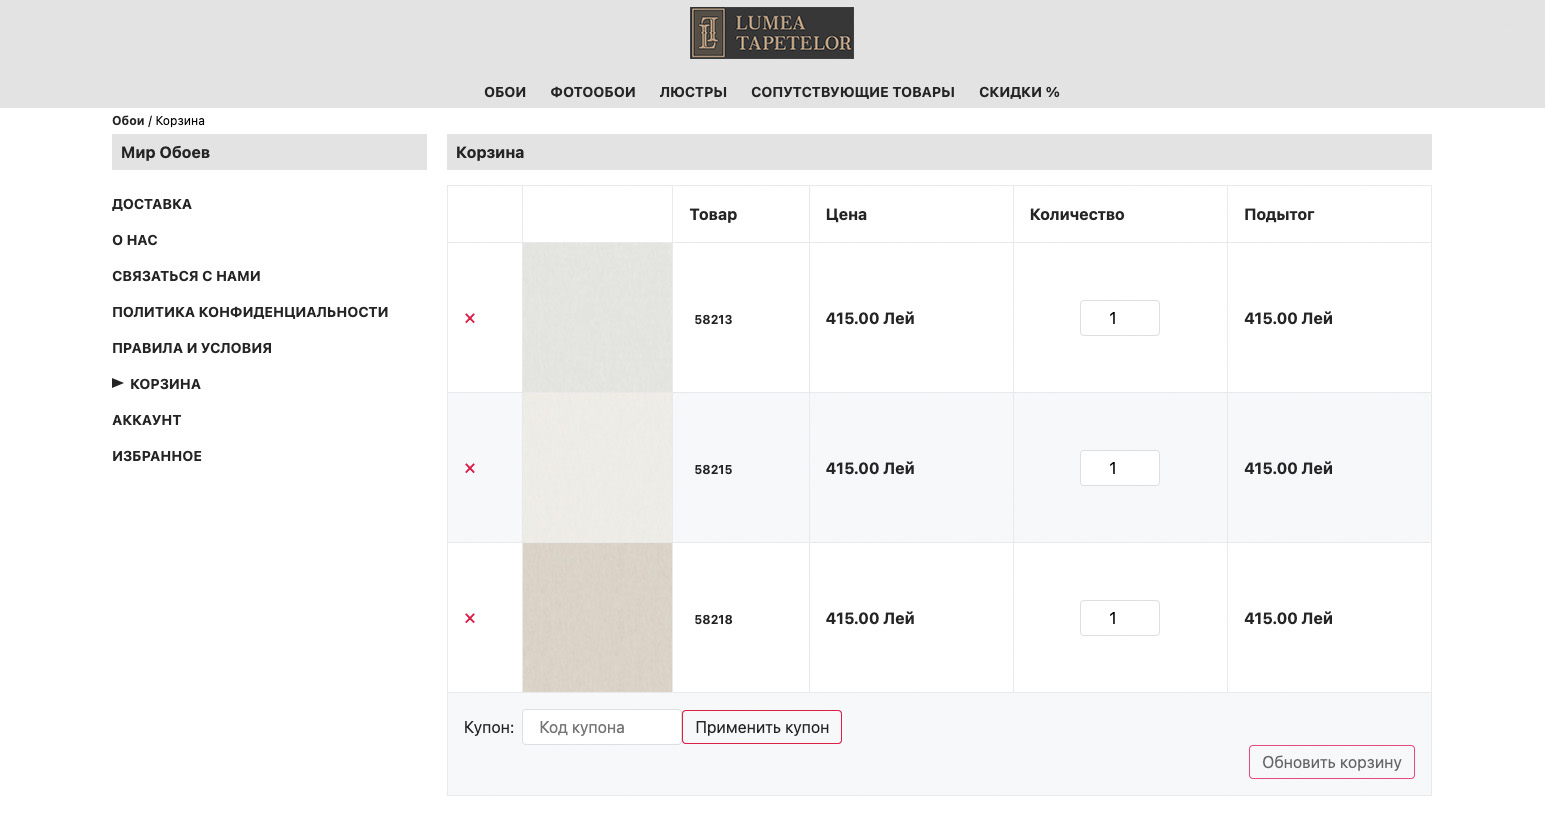 Redesign of the Lumea Tapetelor 21 online store